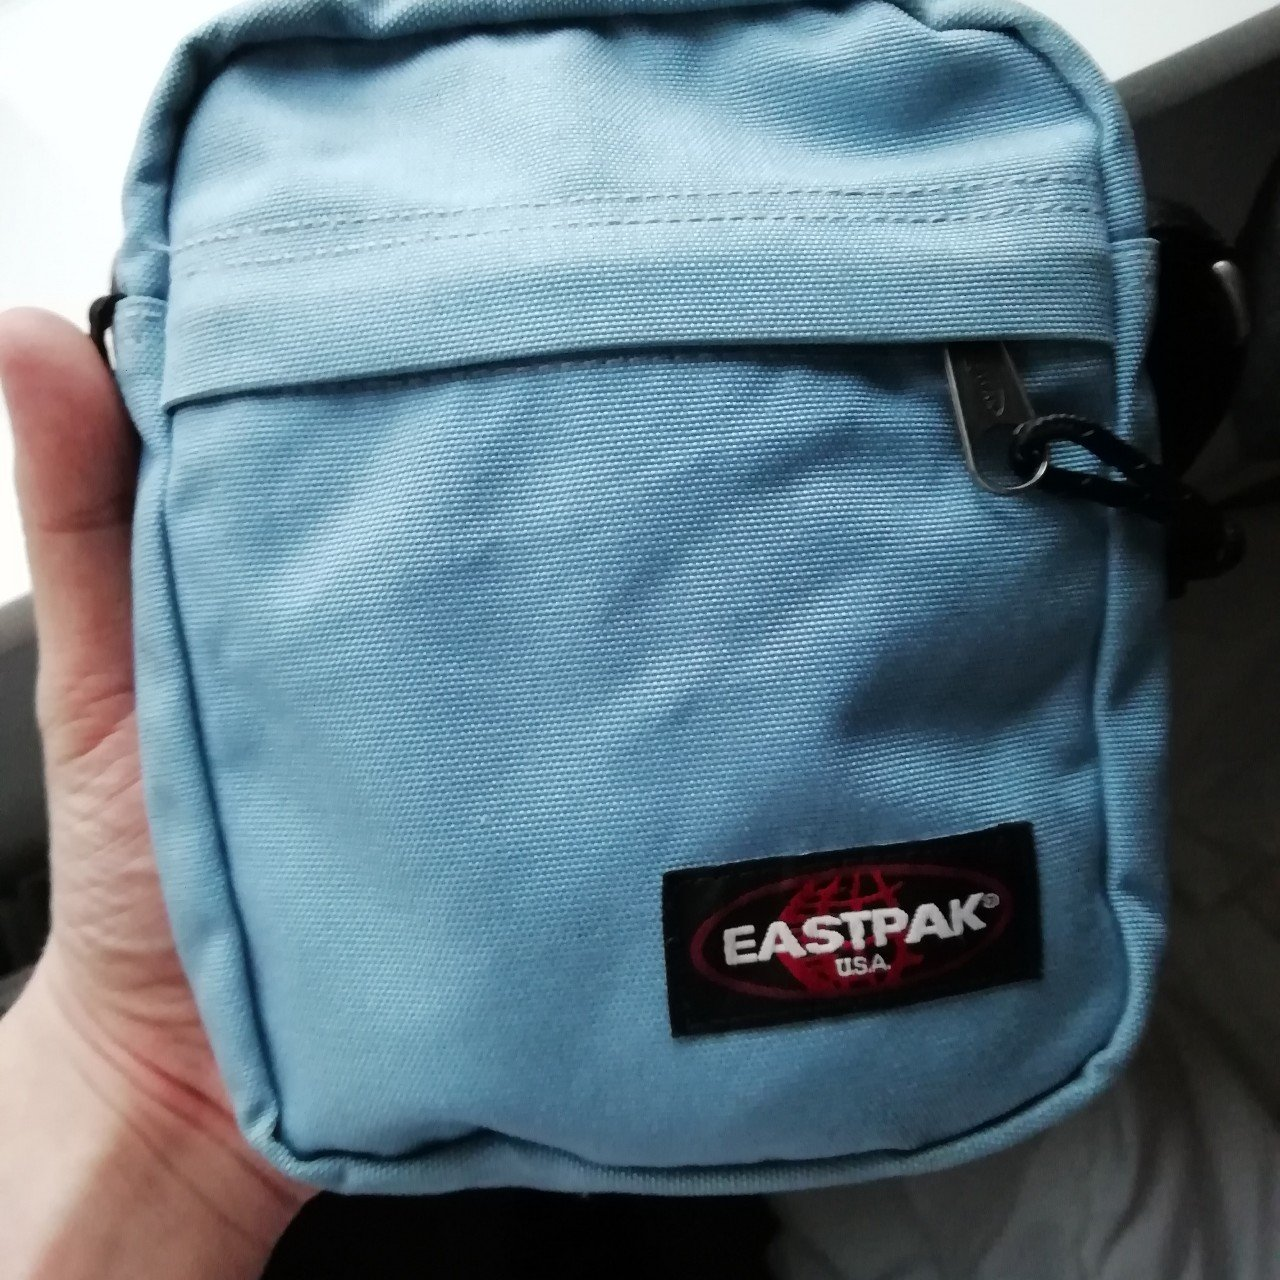 Eastpack bag 8 10 condition Adjustable straps 4 pockets Baby 5c3128aa80113